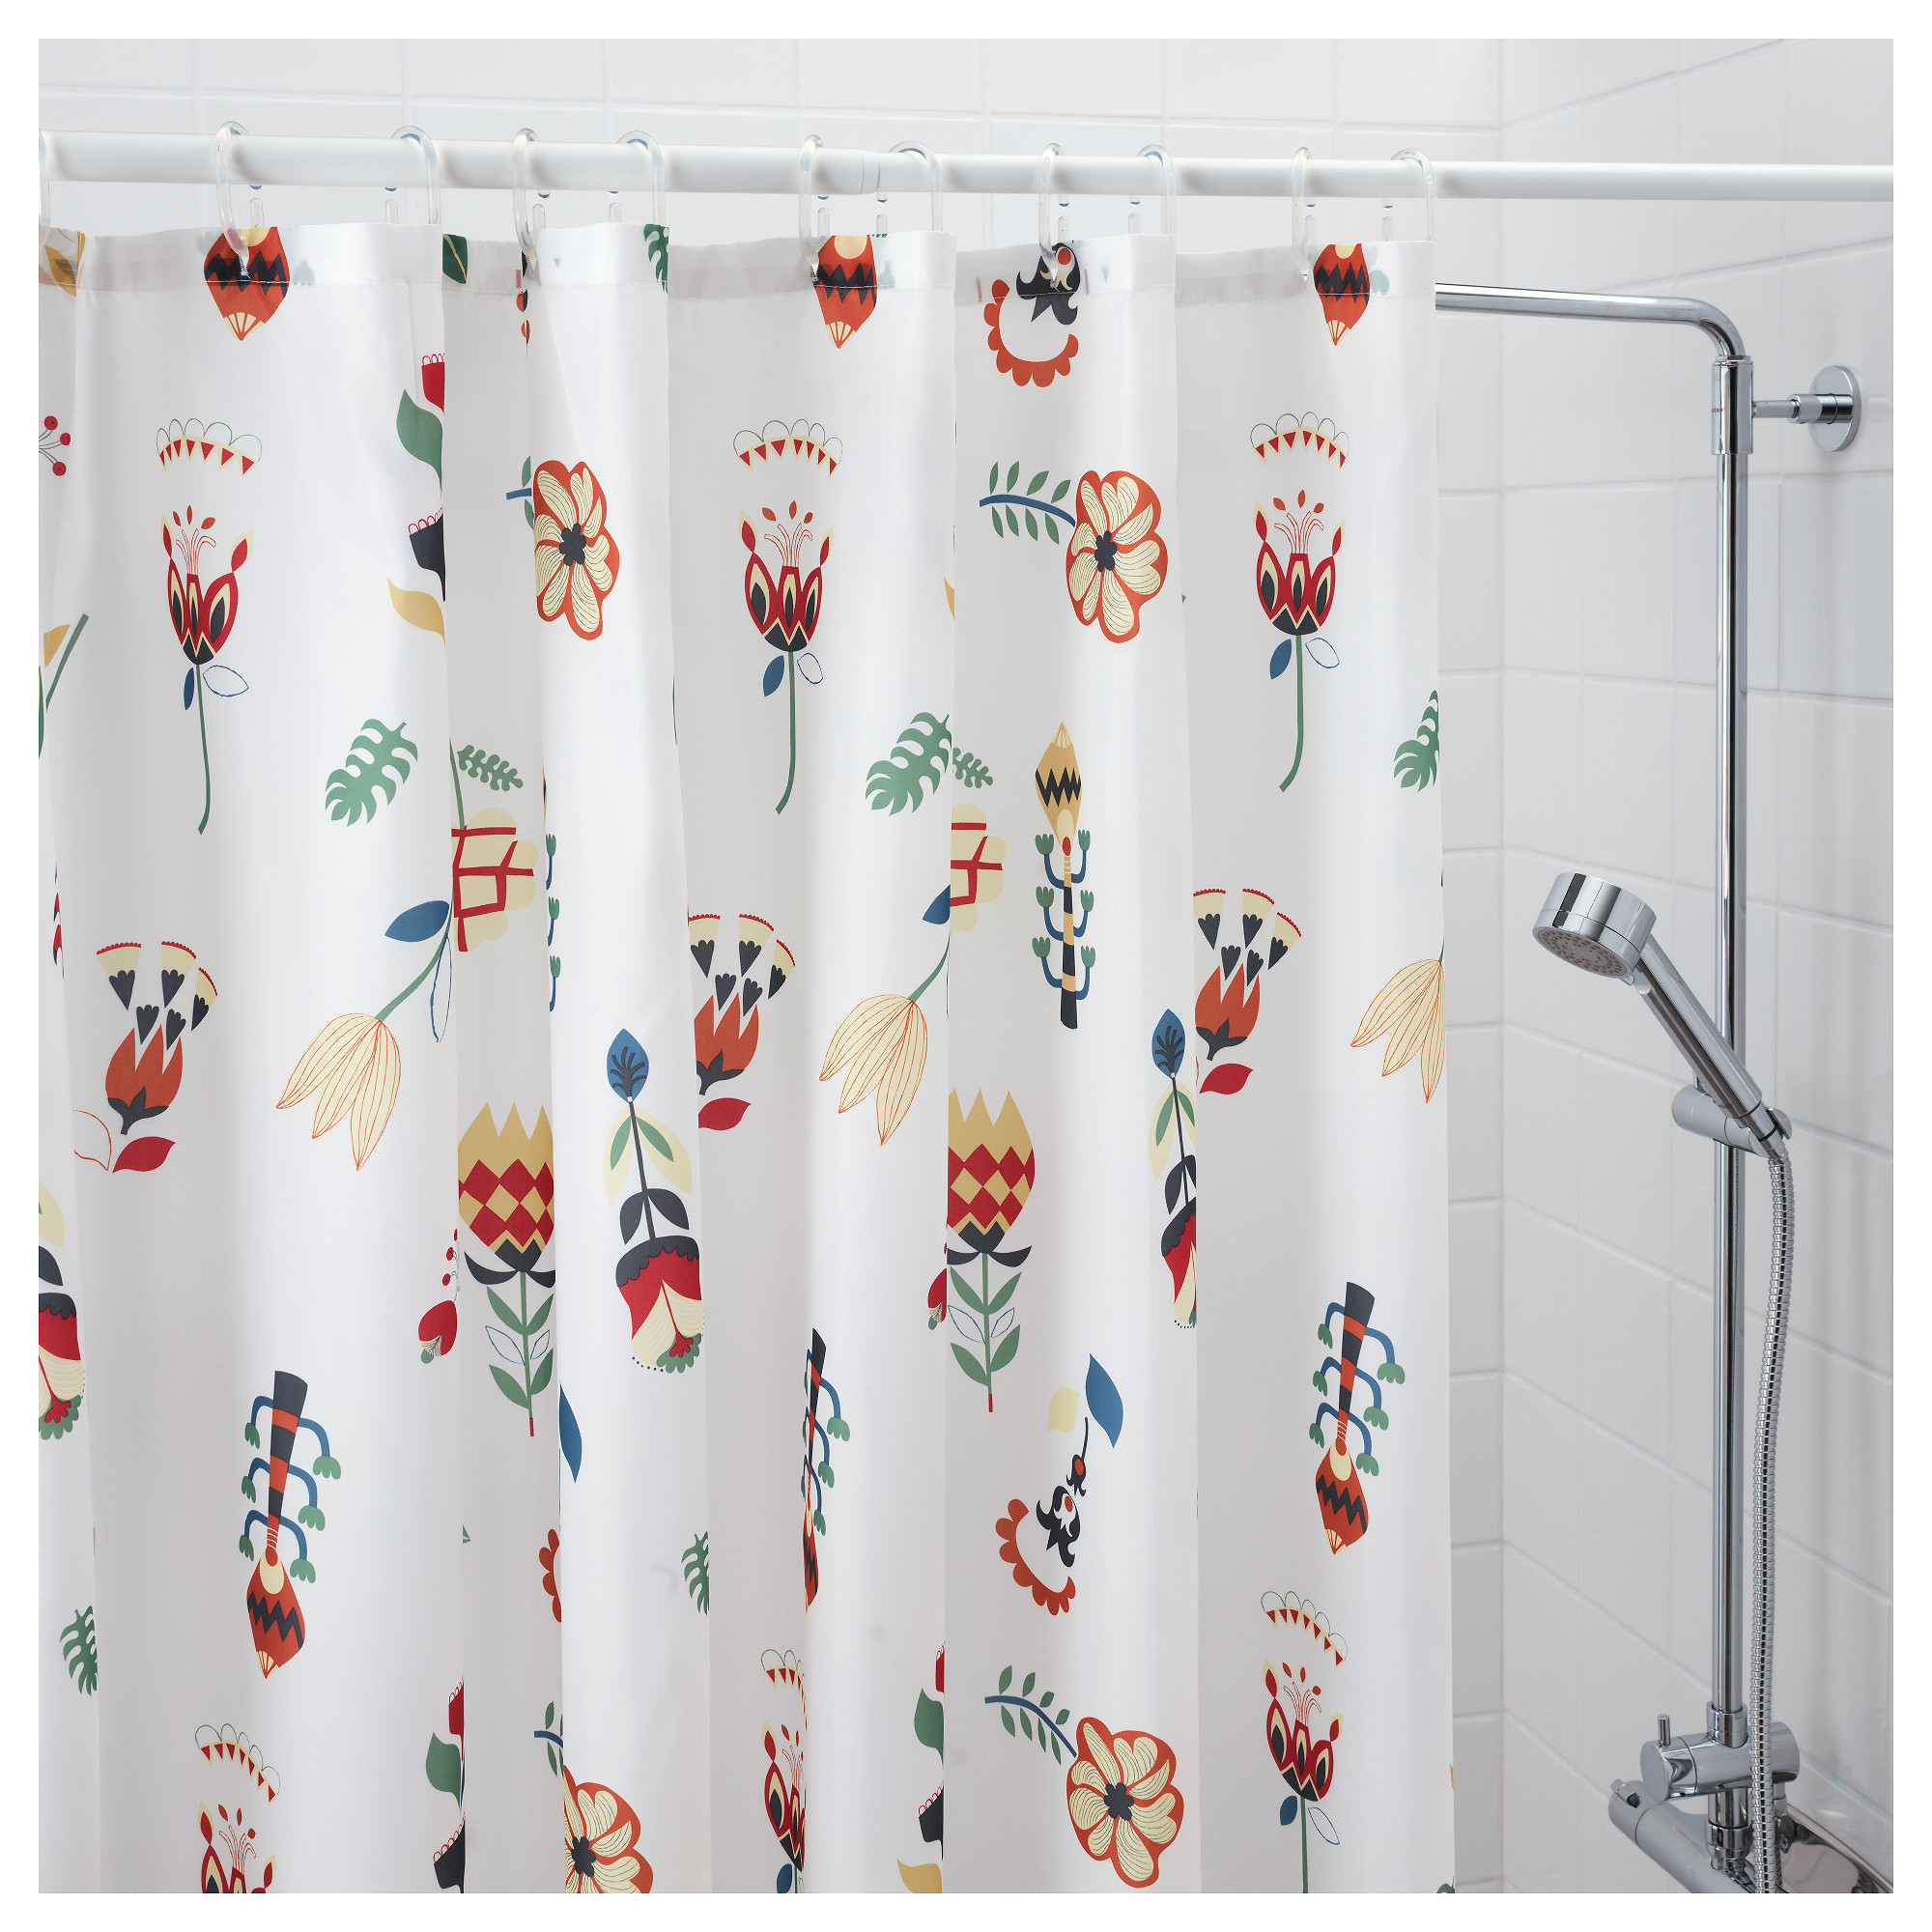 Cheap Shower Curtains | Ikea Shower Curtain | Cloth Shower Curtains